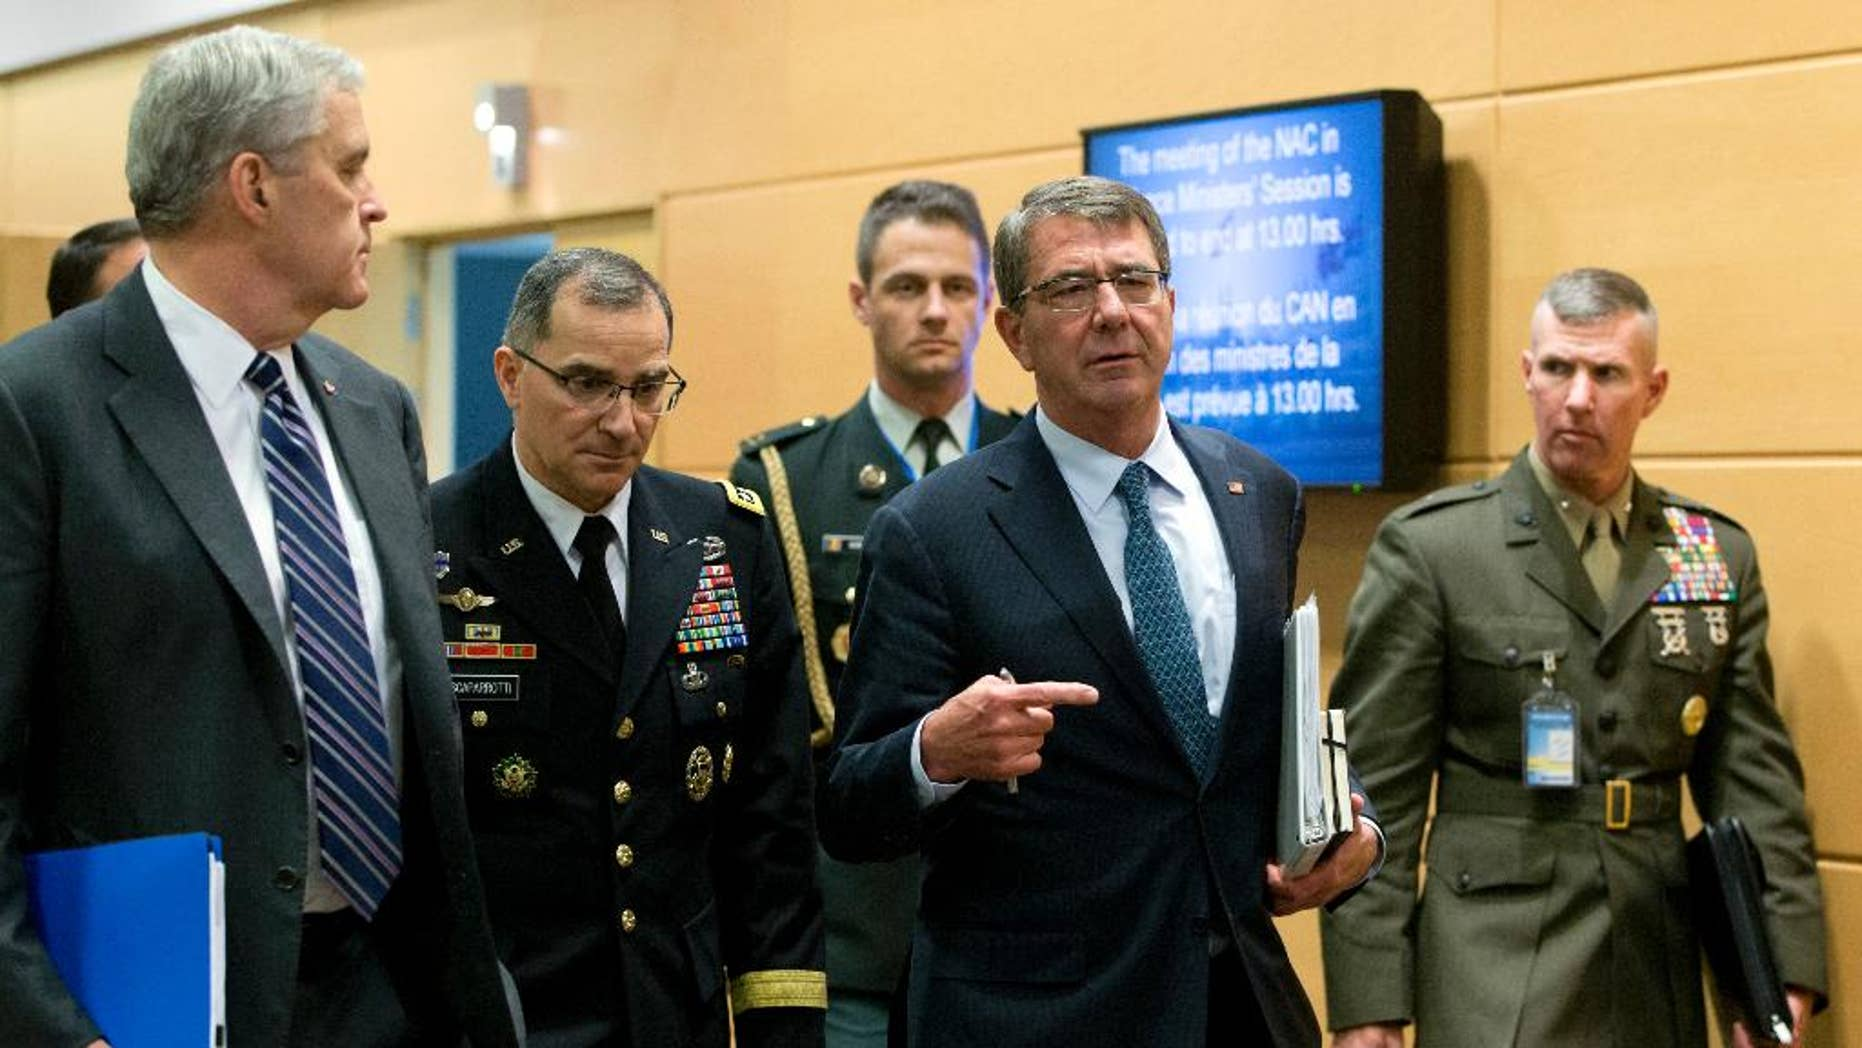 June 15, 2016: U.S. Secretary of Defense Ash Carter, second right, walks with members of his delegation prior to a meeting at NATO headquarters in Brussels.